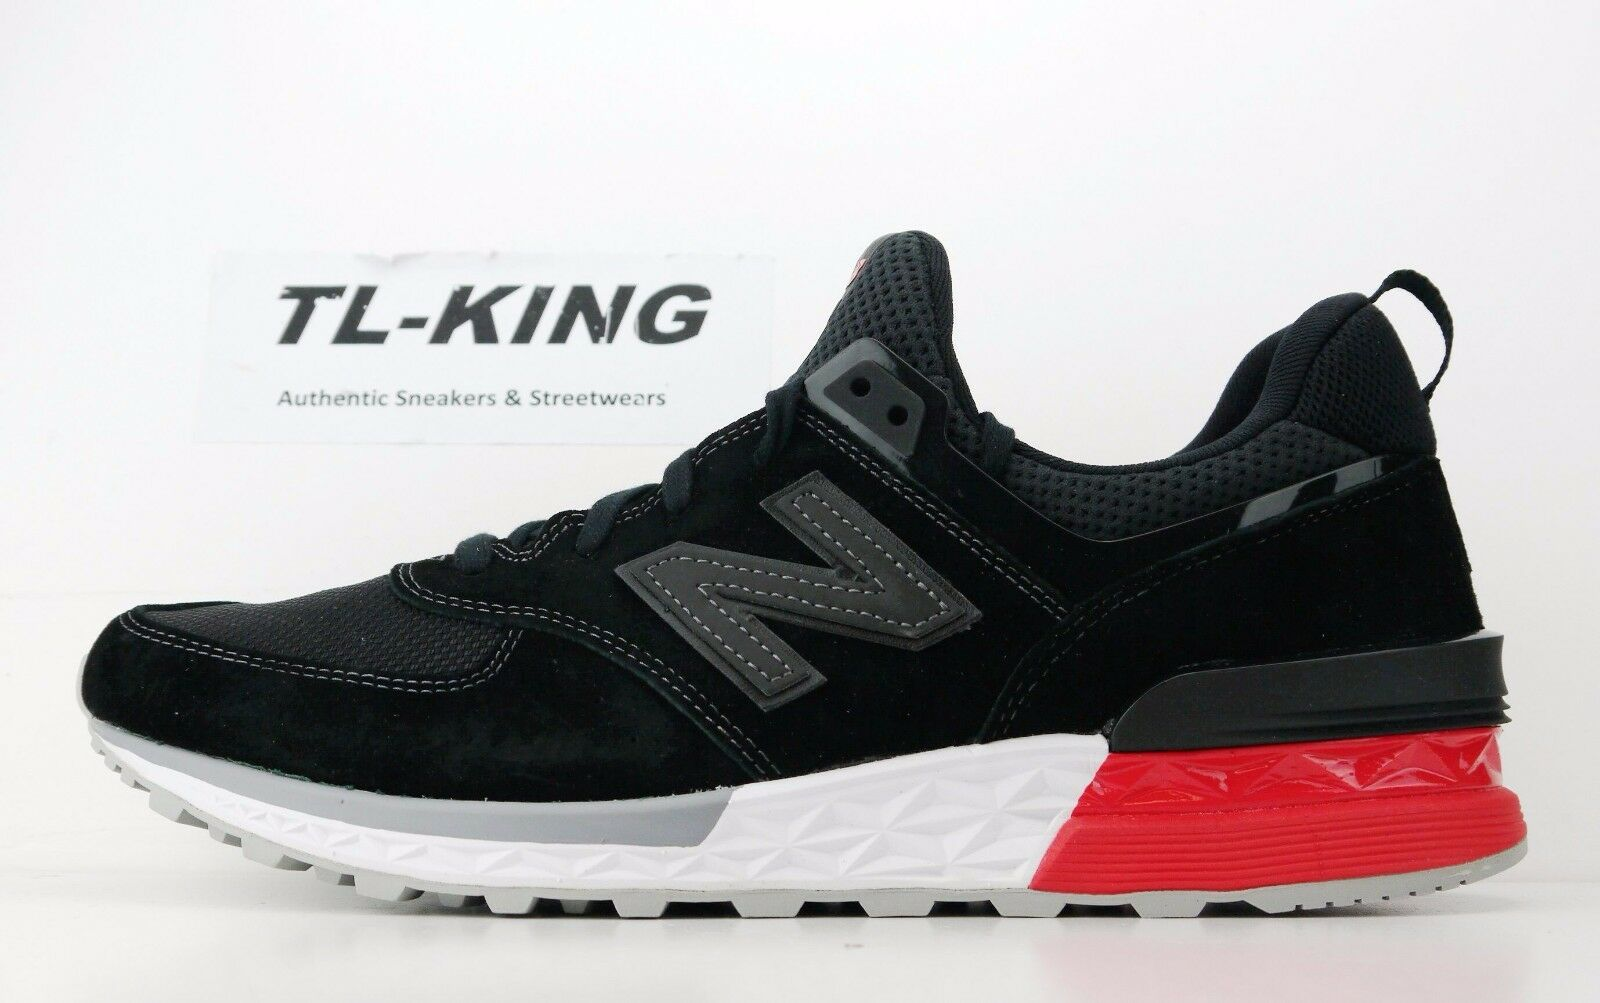 New New New Balance MS574AB Fresh Foam nero bianca rosso Life Style Classic Msrp  120 GC a5d5c5